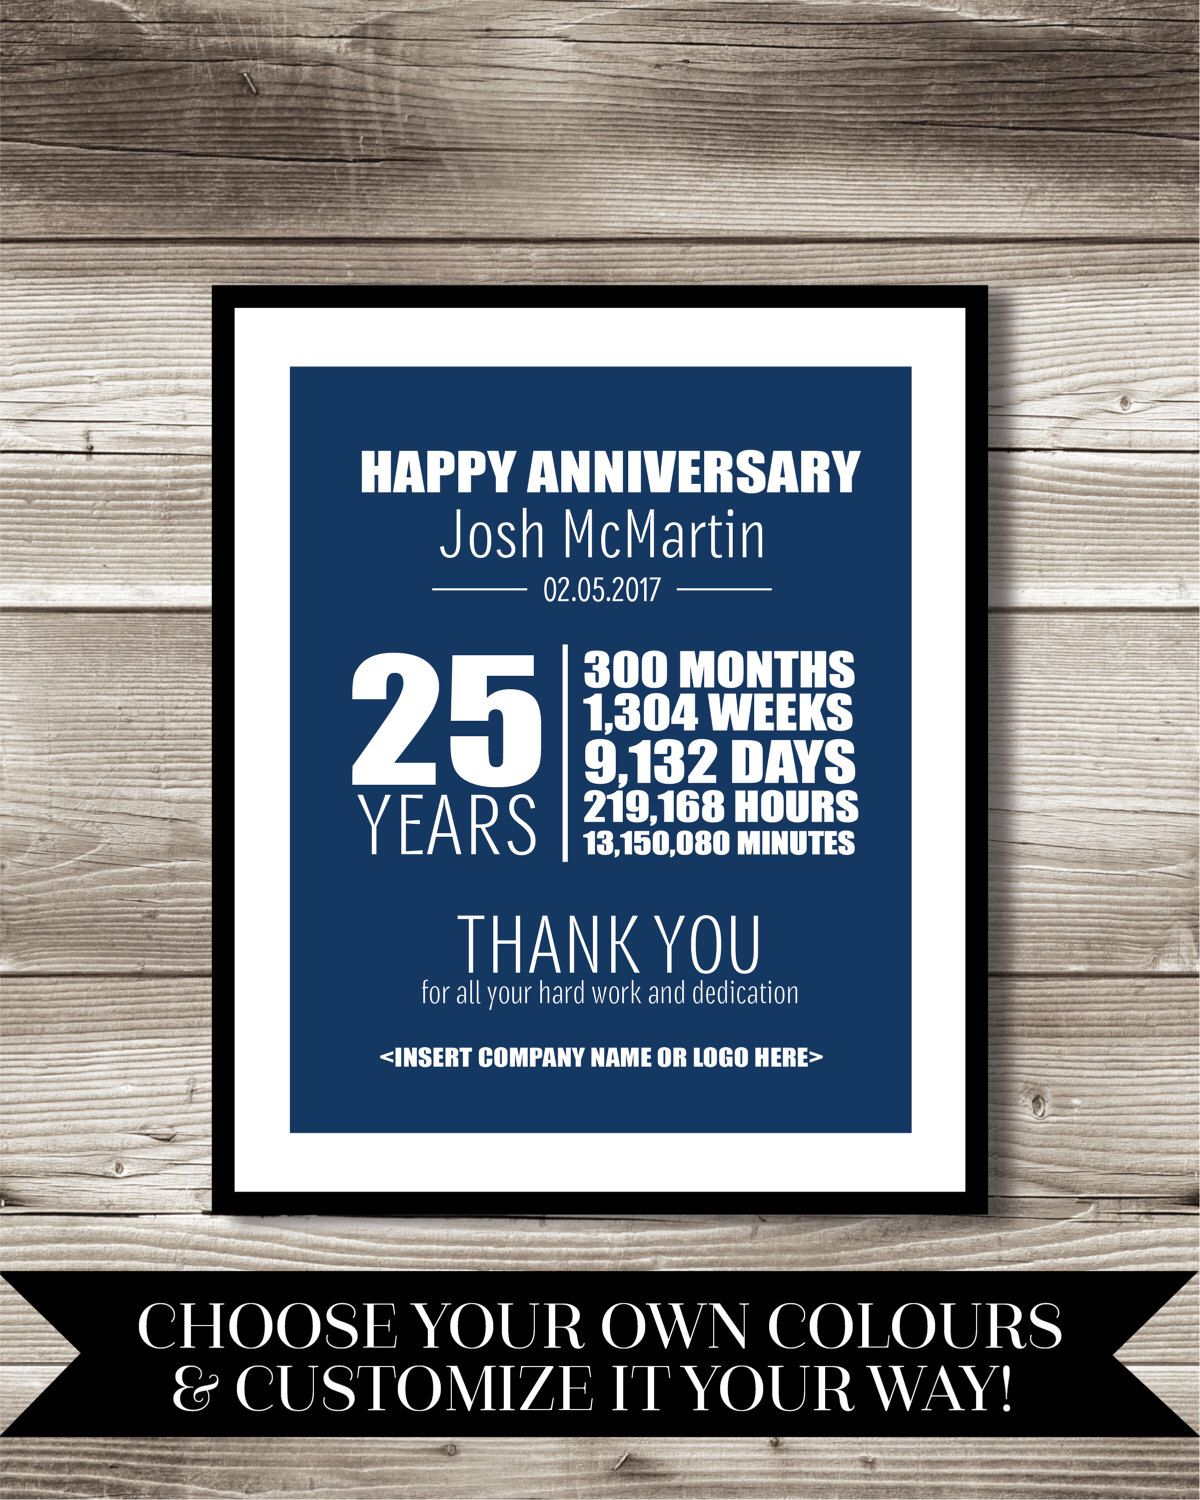 25 Year Work Anniversary Print Gift Digital Print Customizable Thank You Gift Years Of Service Employee Recognition Work Anniversary Employee Recognition 25 Year Anniversary Gift